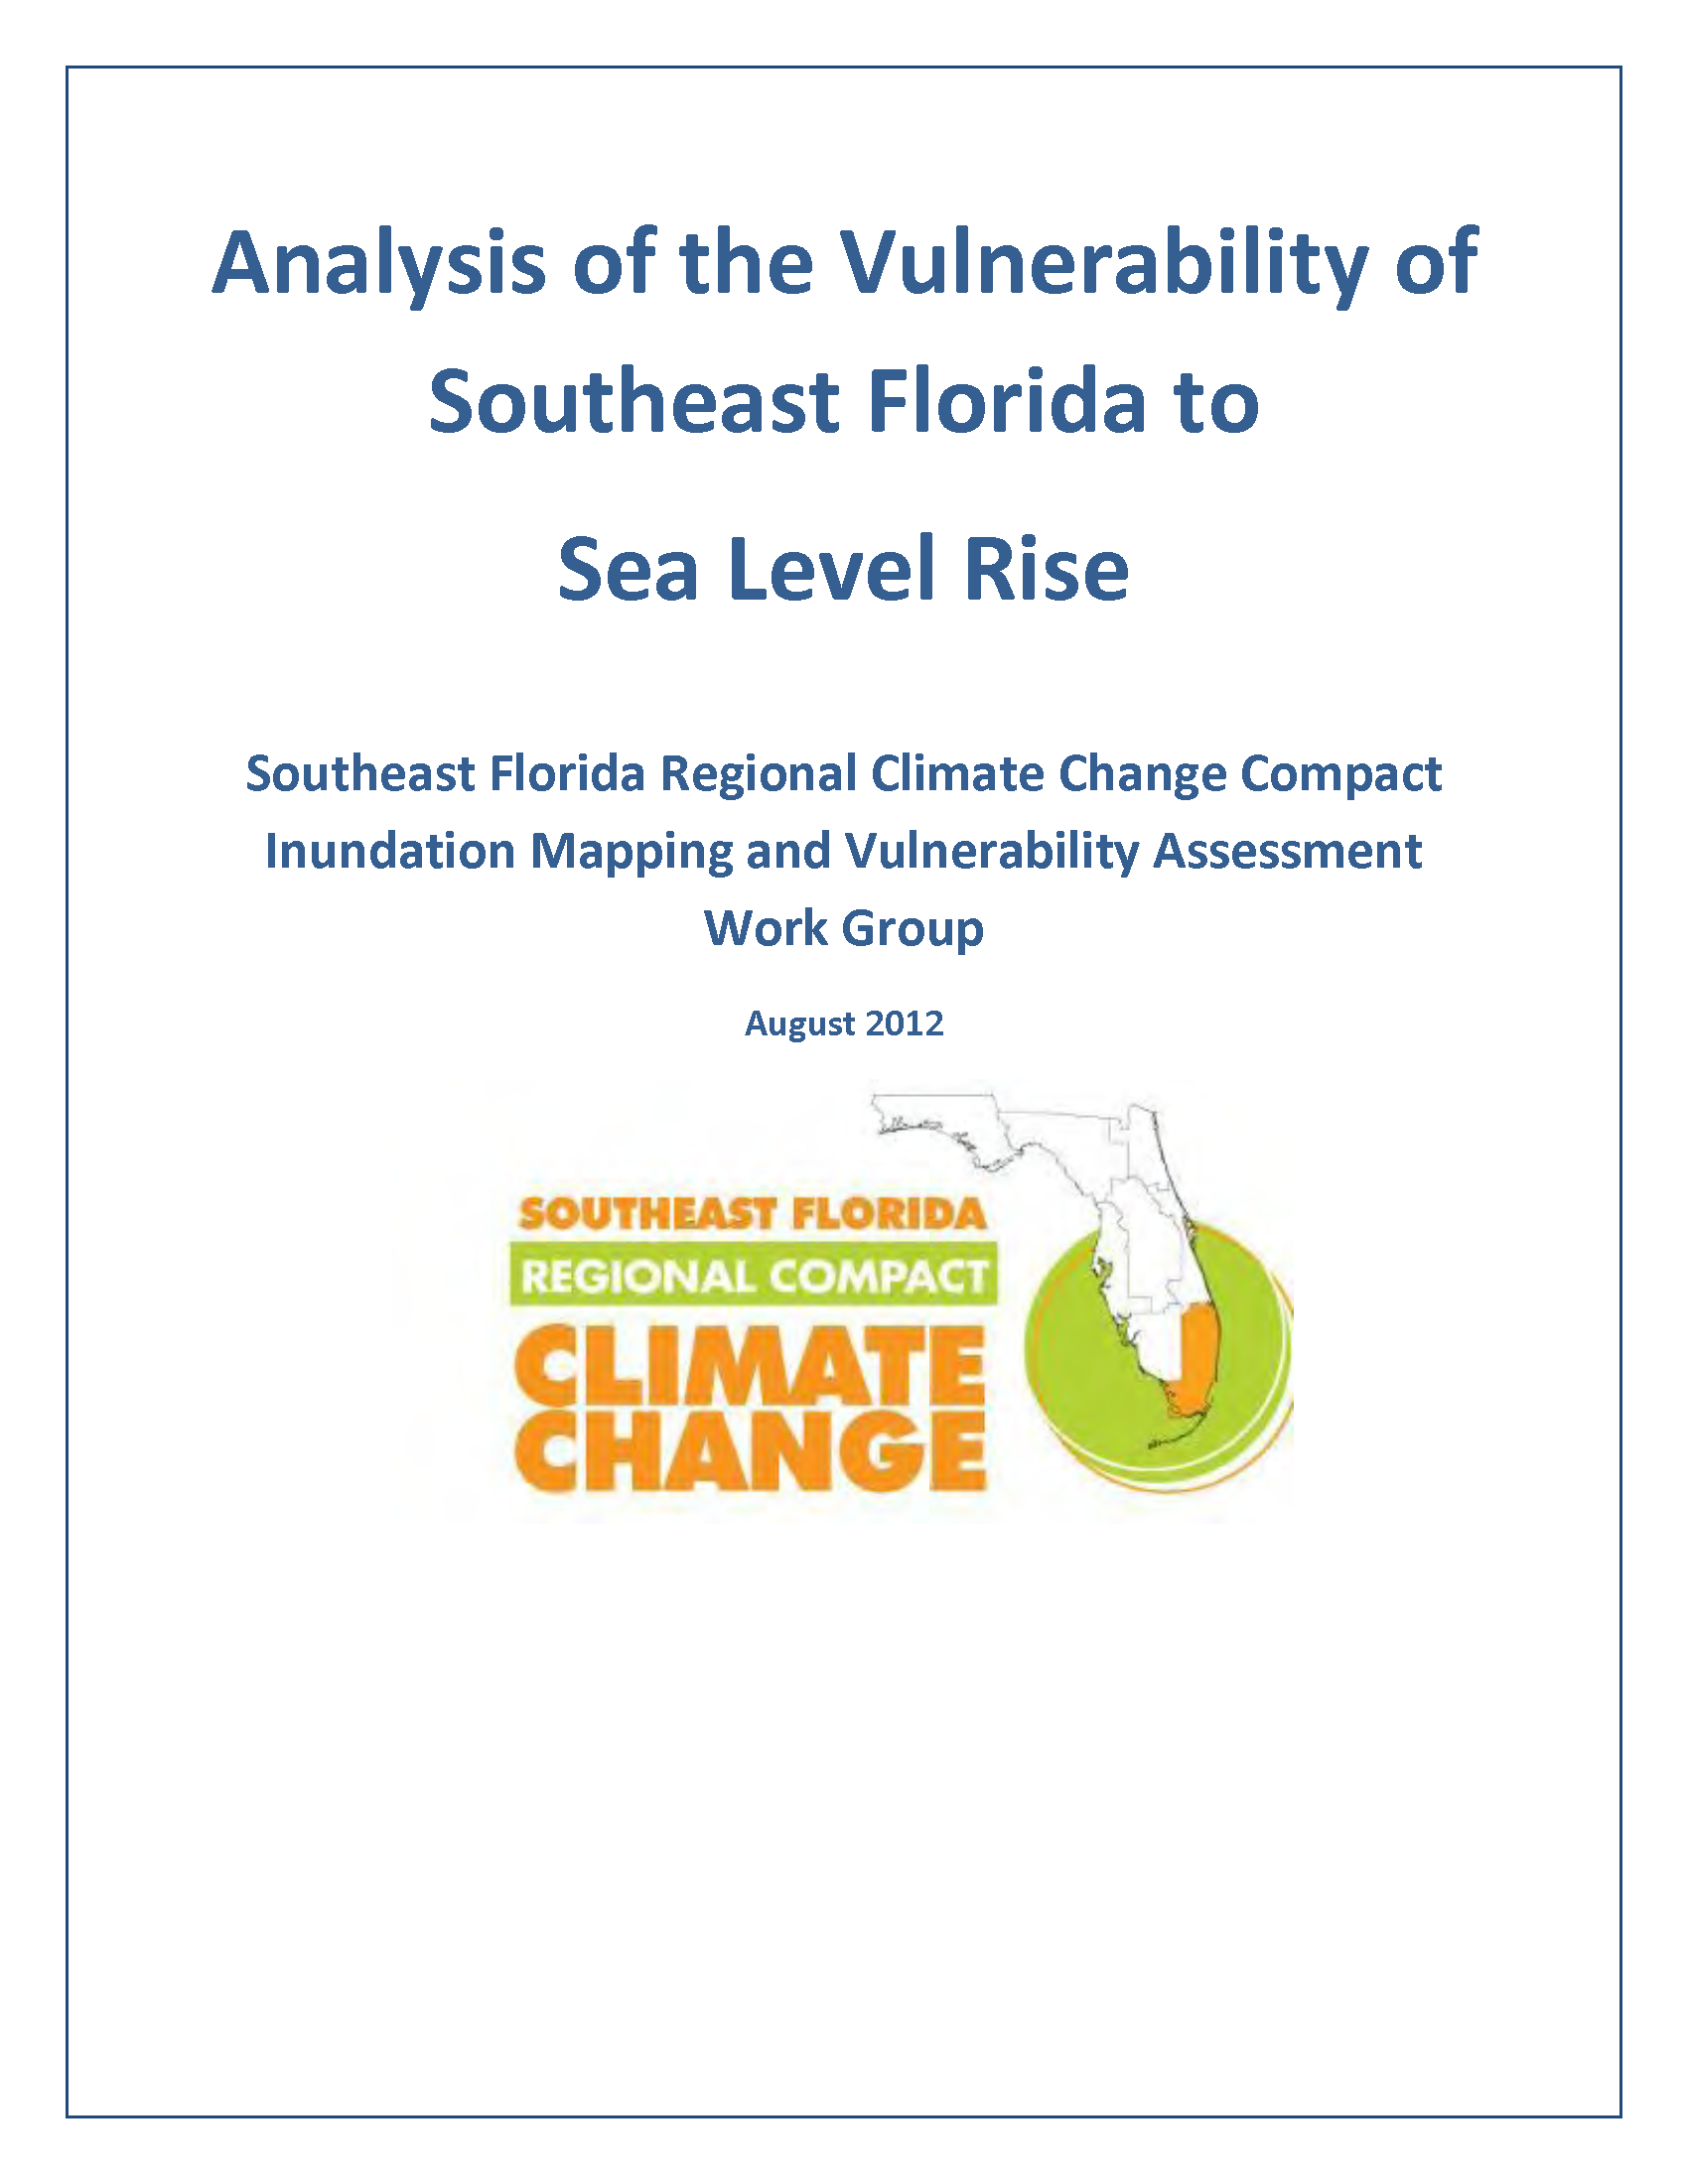 http://www.southeastfloridaclimatecompact.org//wp-content/uploads/2014/09/vulnerability-assessment.png